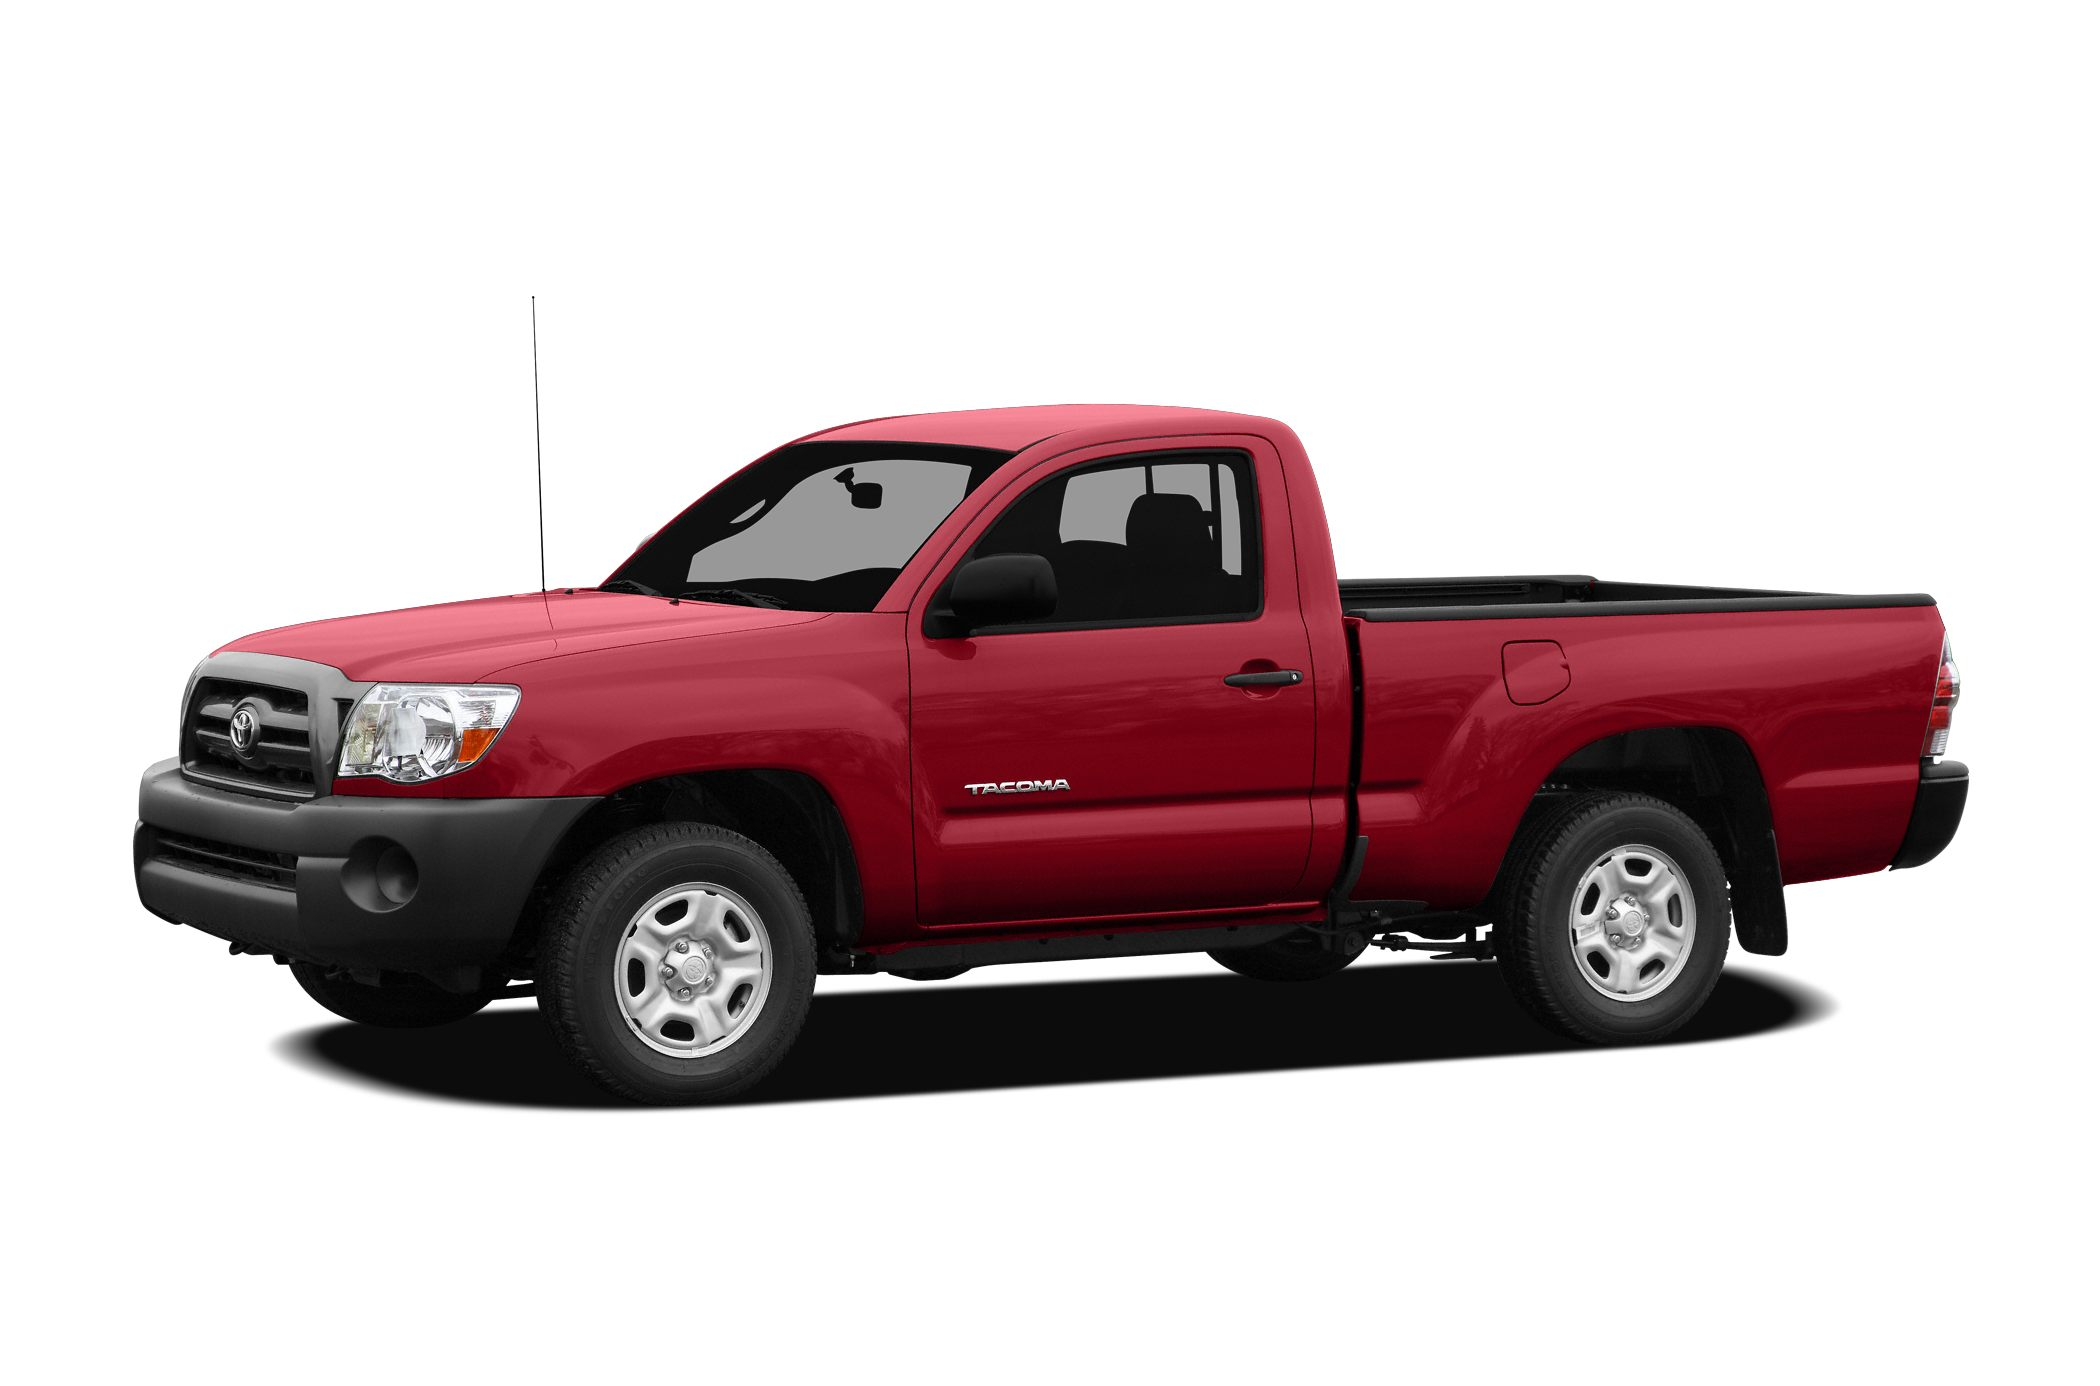 2009 Toyota Tacoma Regular Cab Pickup for sale in Chandler for $12,791 with 86,807 miles.